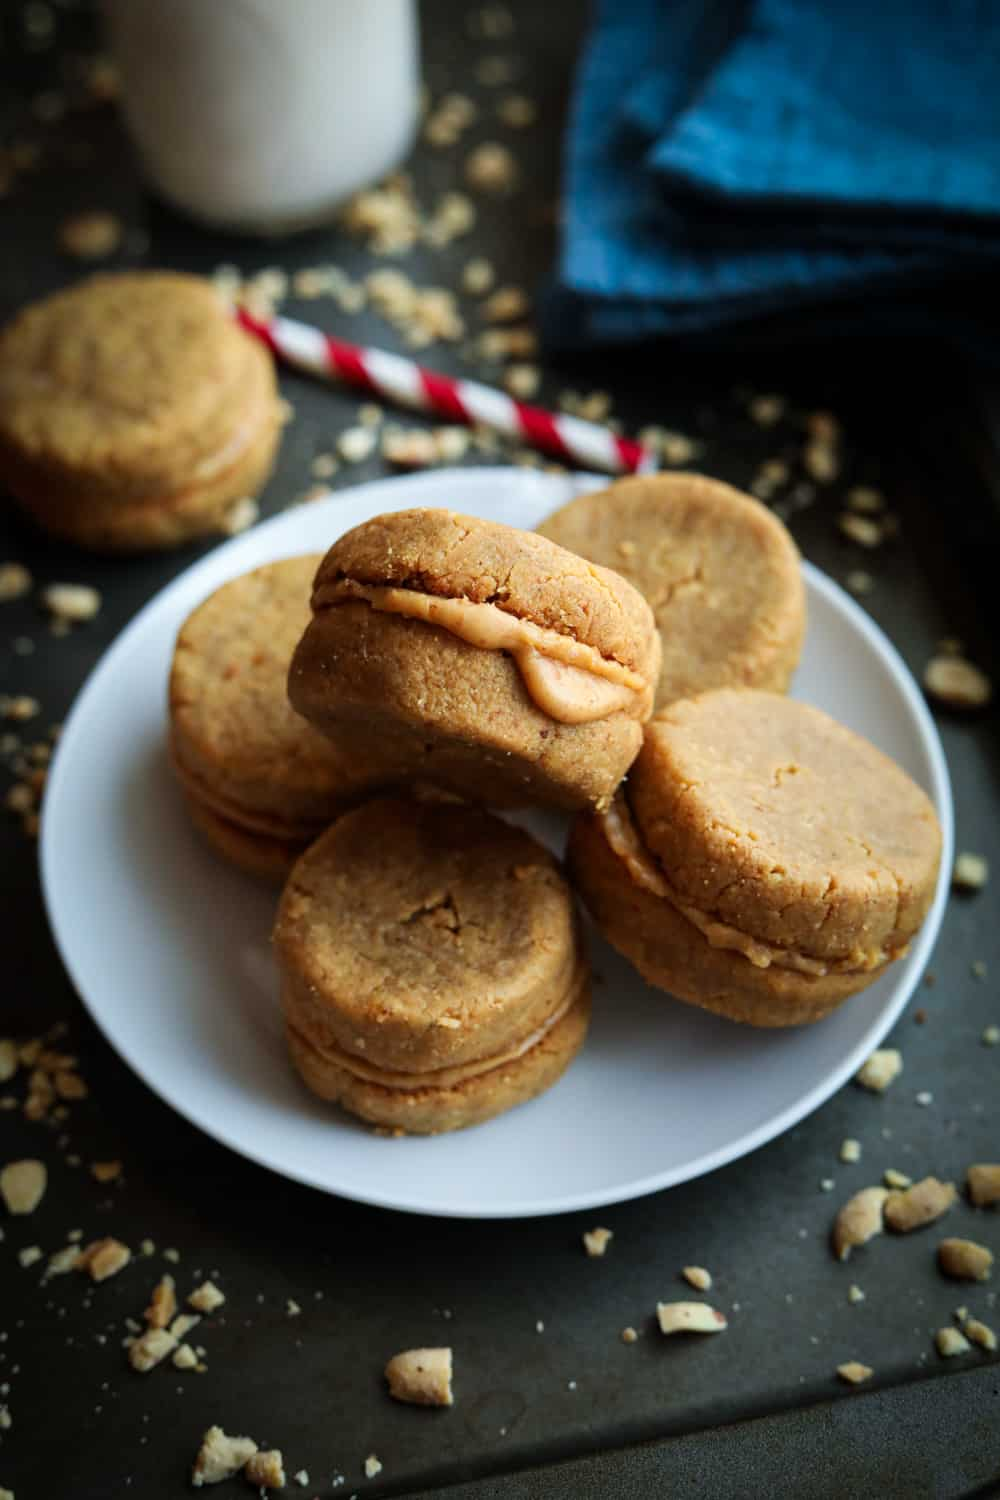 A white plate with 5 peanut butter cookies on it. The plate is set on a baking sheet with a glass of milk, and a blue napkin behind it.